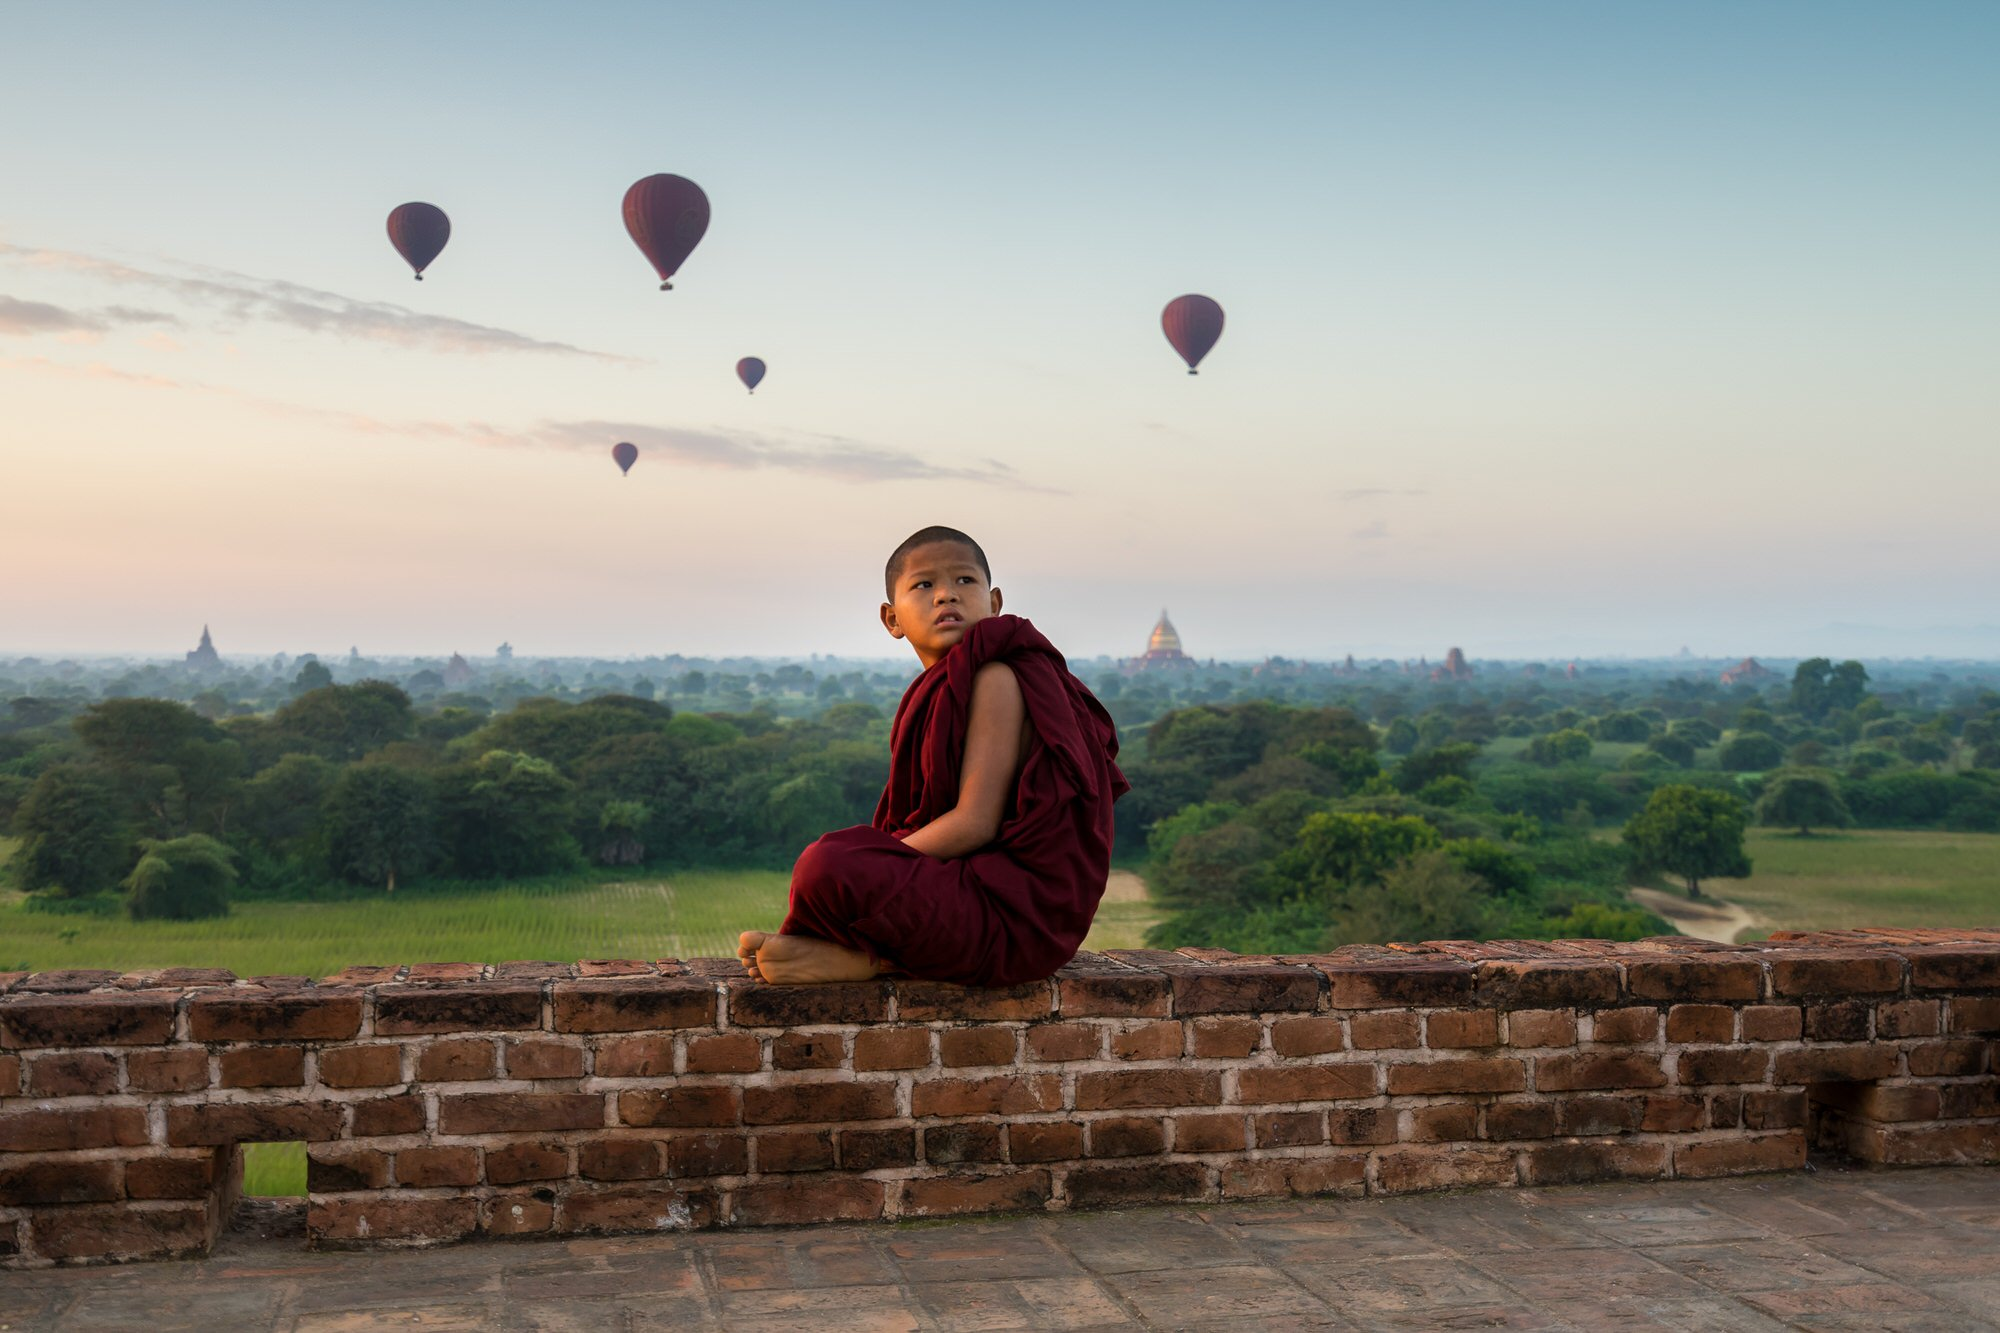 A young Buddhist monk is looking at hot air balloons taking off at sunrise